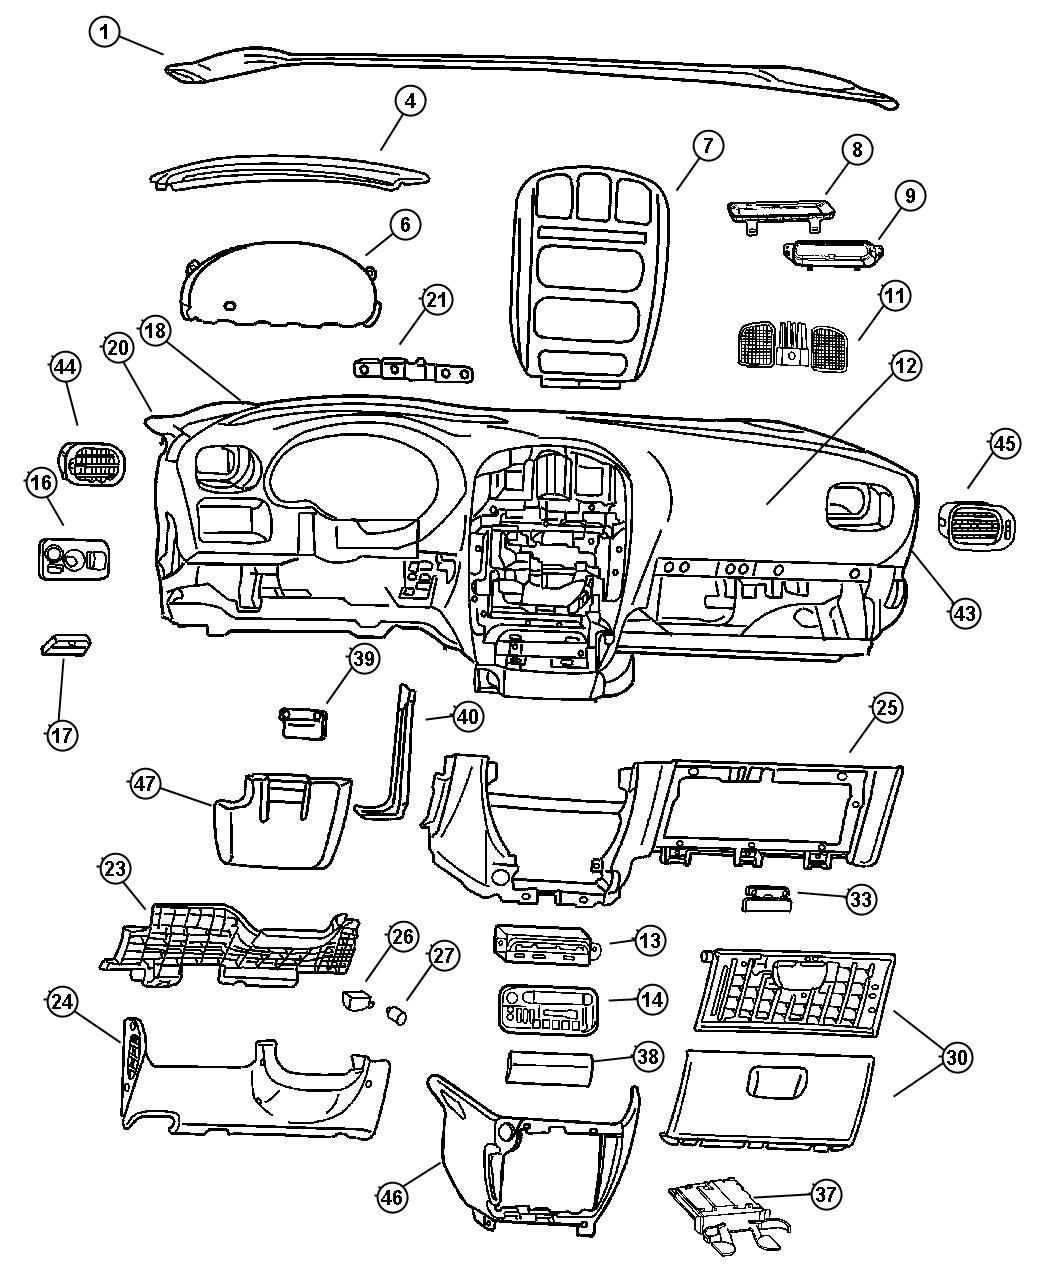 A Ddb B C F E A on 2002 Volvo S40 Engine Diagrams